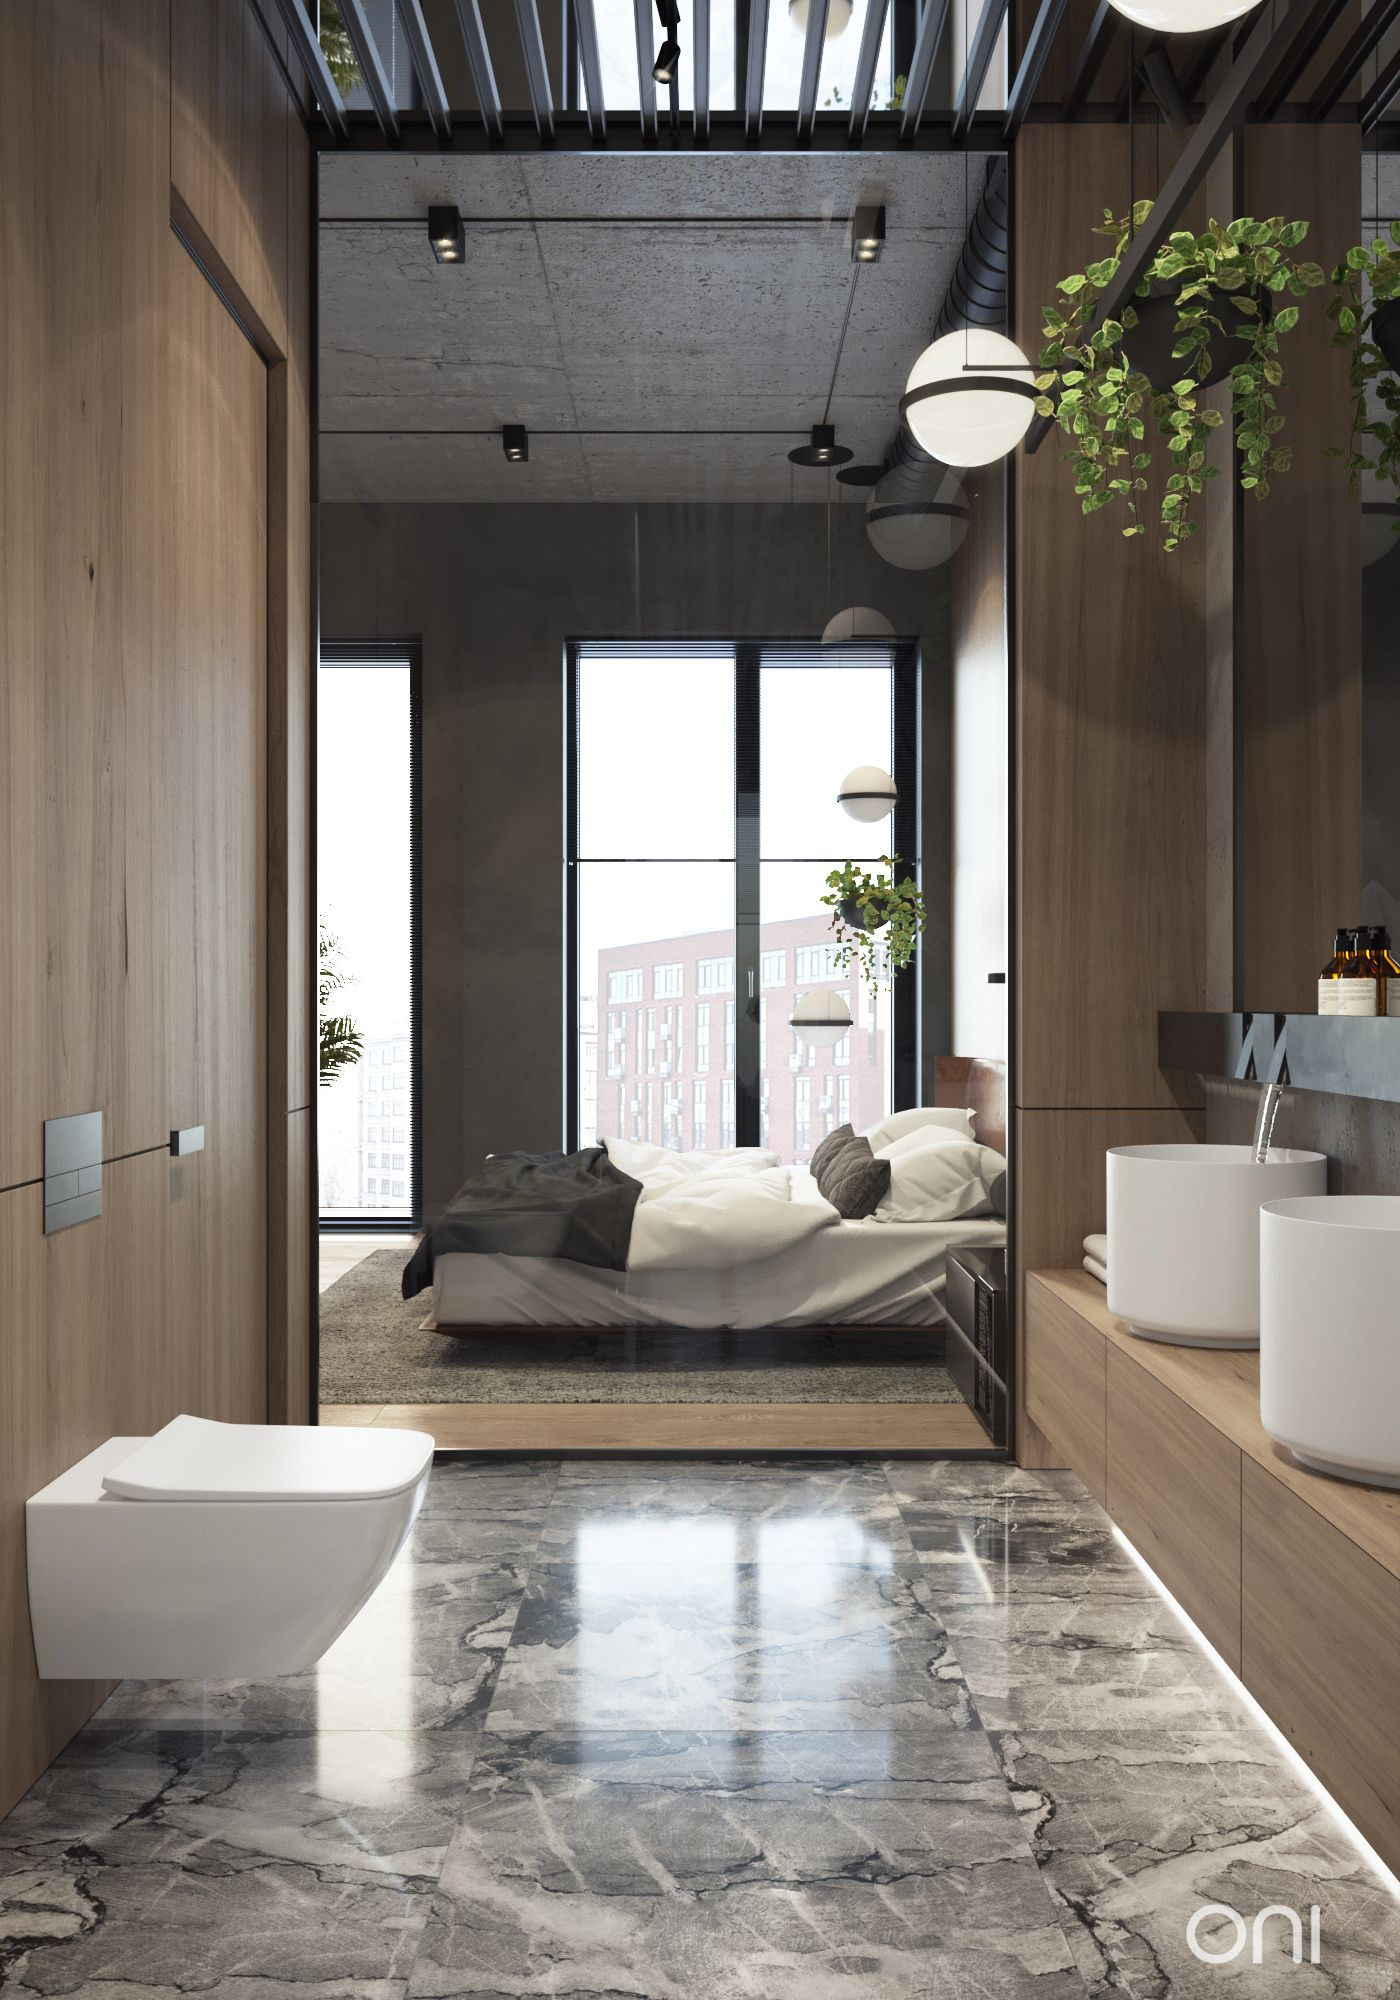 Muebles New Style Villa Tesei - The Cozy Loft On Behance F Rd Szoba Pinterest Lofts Cozy [mjhdah]https://s-media-cache-ak0.pinimg.com/originals/97/43/38/97433894c9ee3523730a34241d140069.jpg